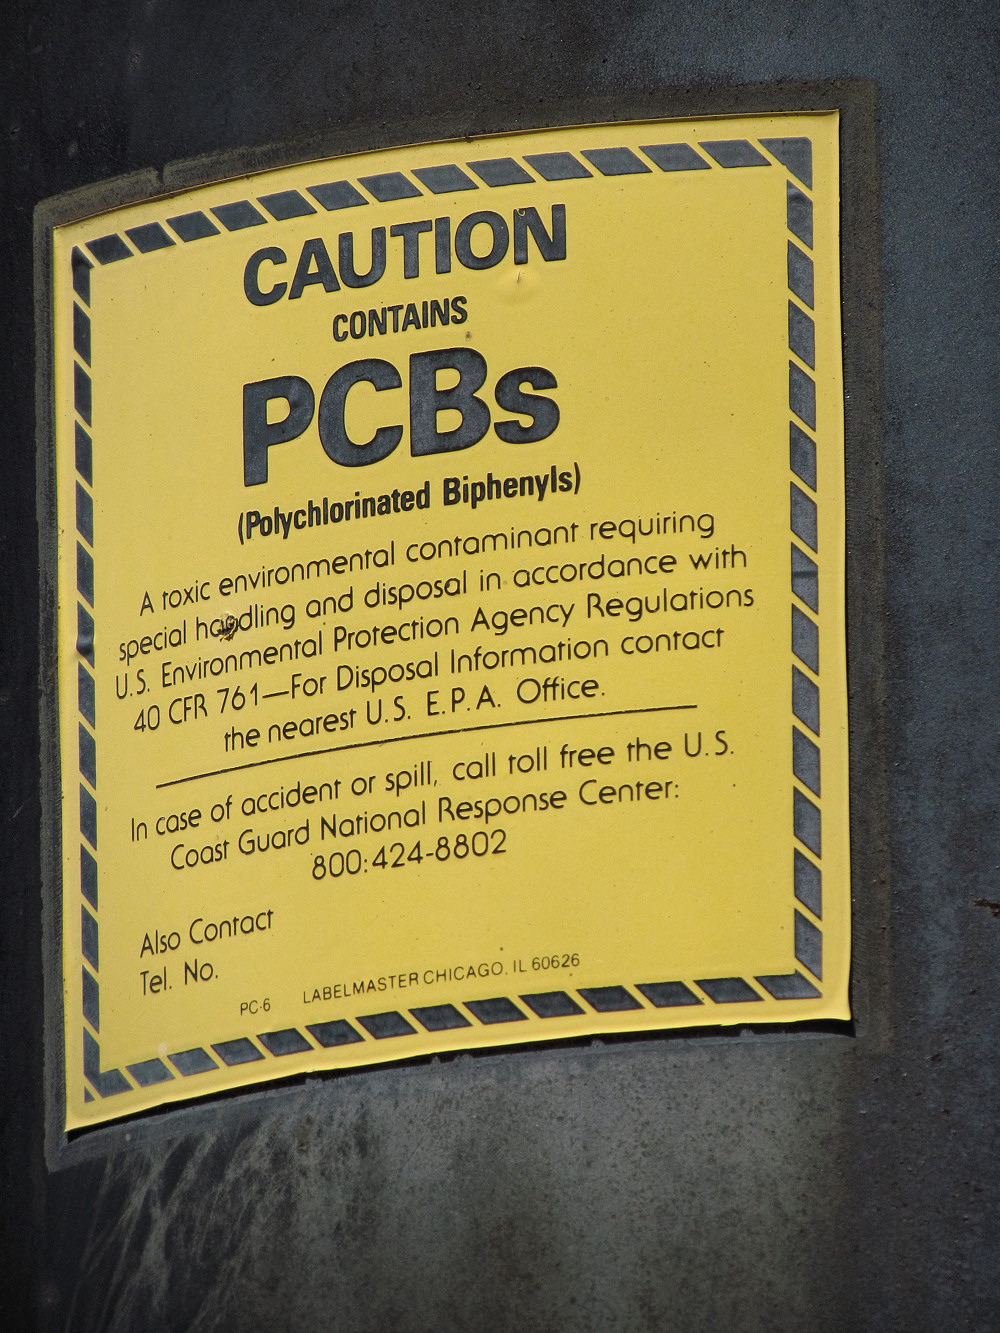 caution contains pcbs